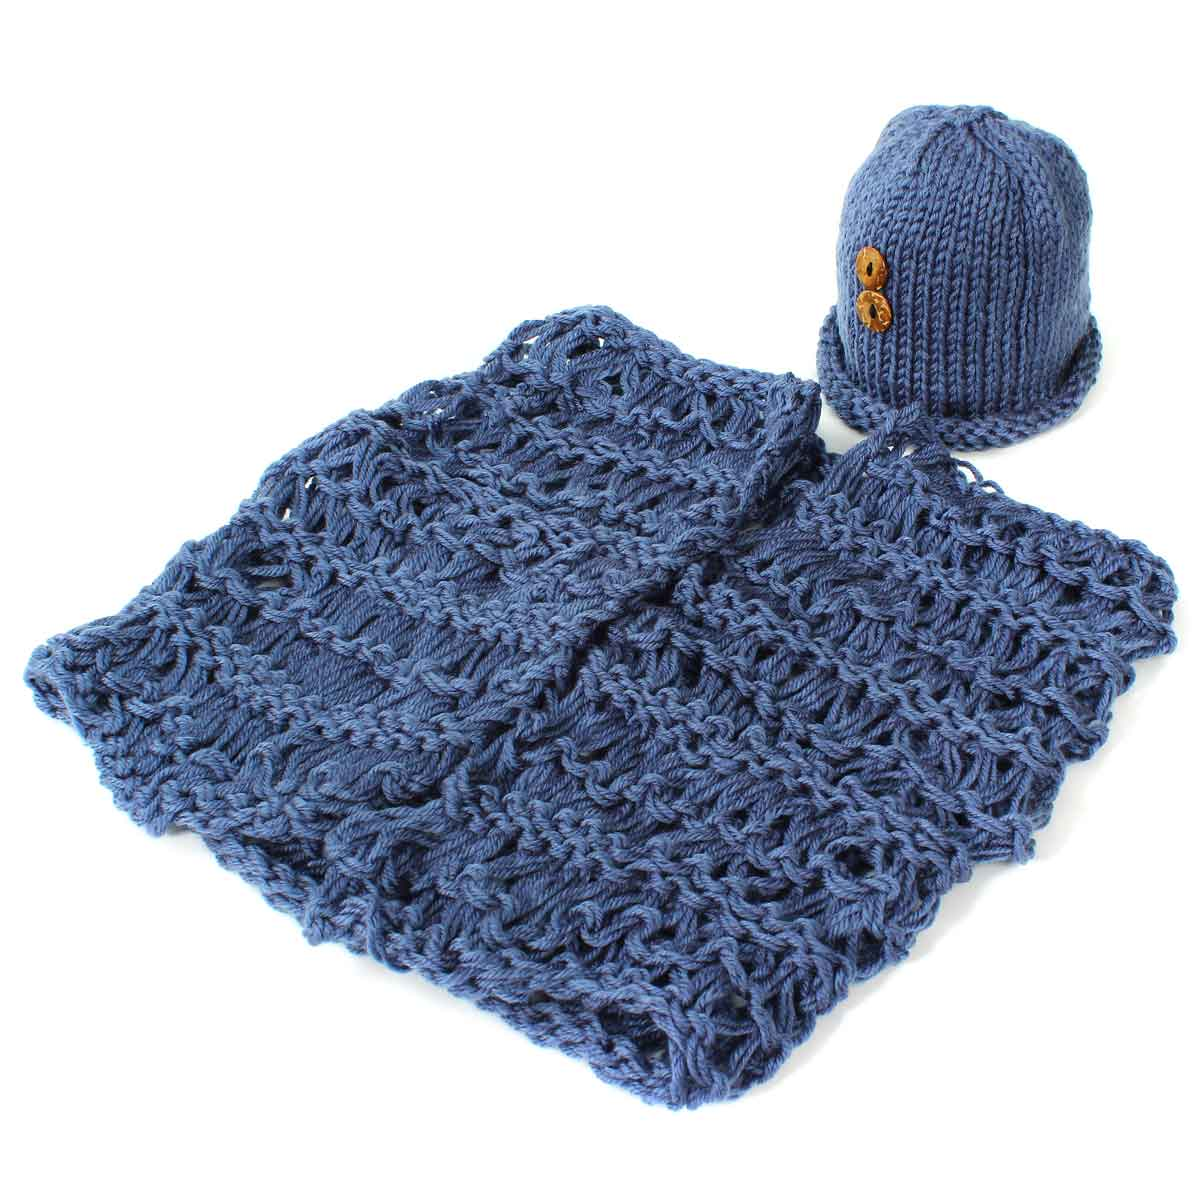 Crochet Newborn Baby Costume Photography Props Blue&amp;Button Beanies And Blanket Handmade Knit 0-6month Infant Photo Shoot Clothes<br><br>Aliexpress